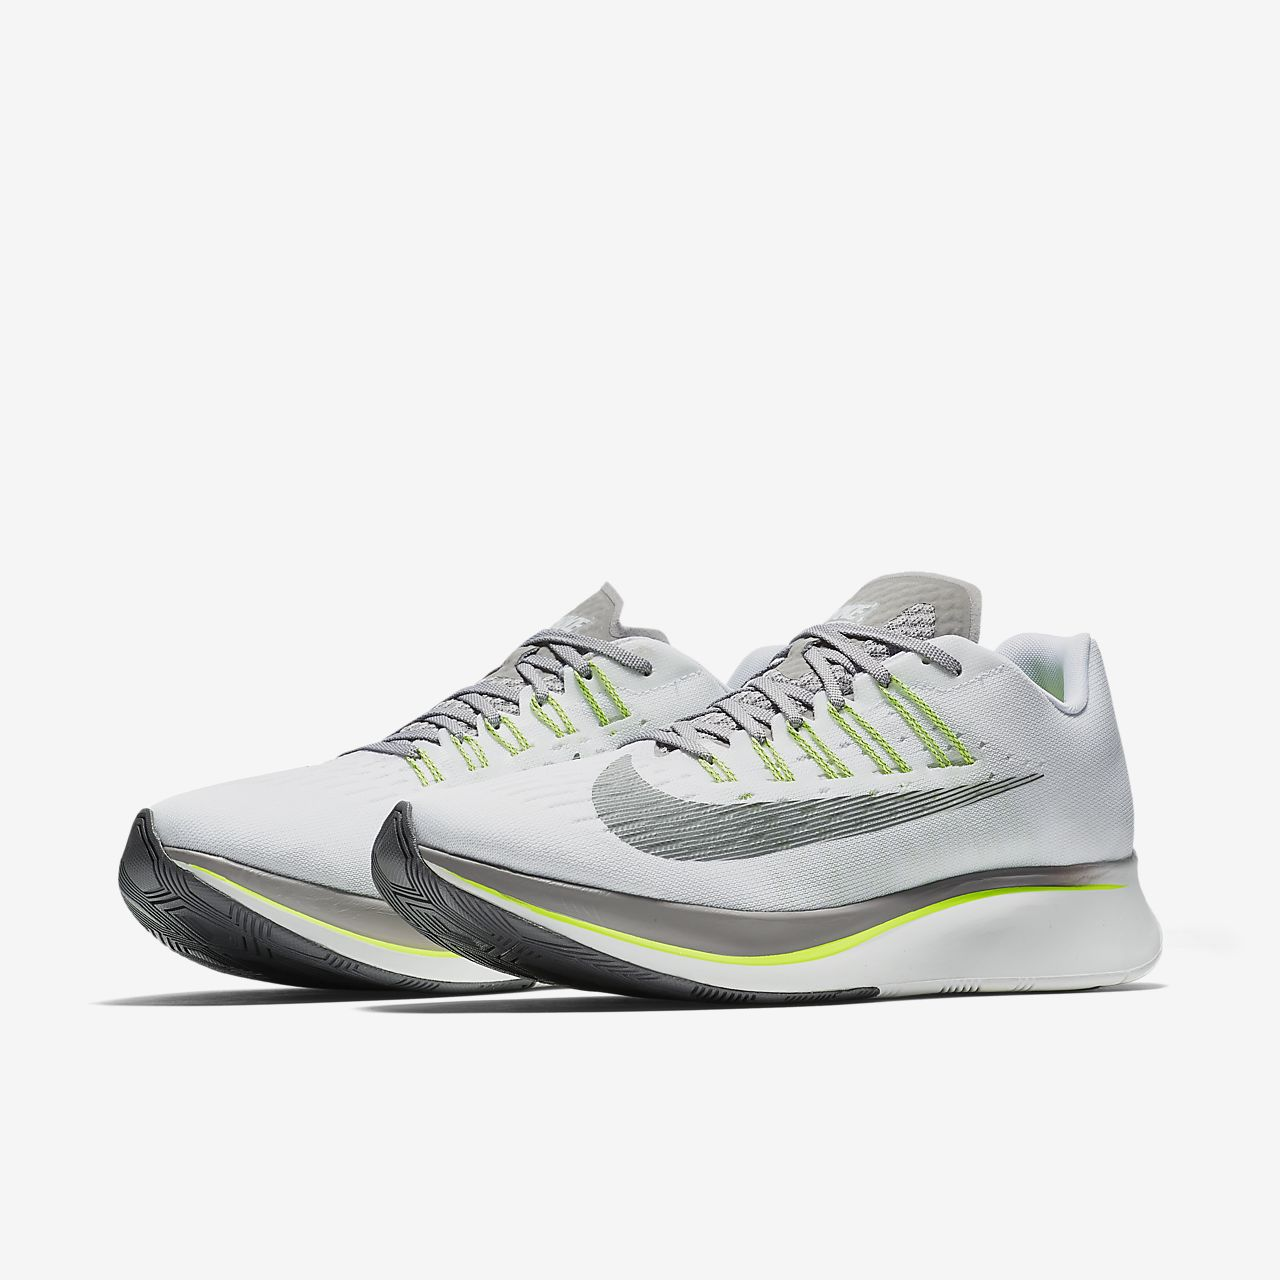 Nike De Chaussure Fly Homme Pour Running Ca Zoom TExxqdRU